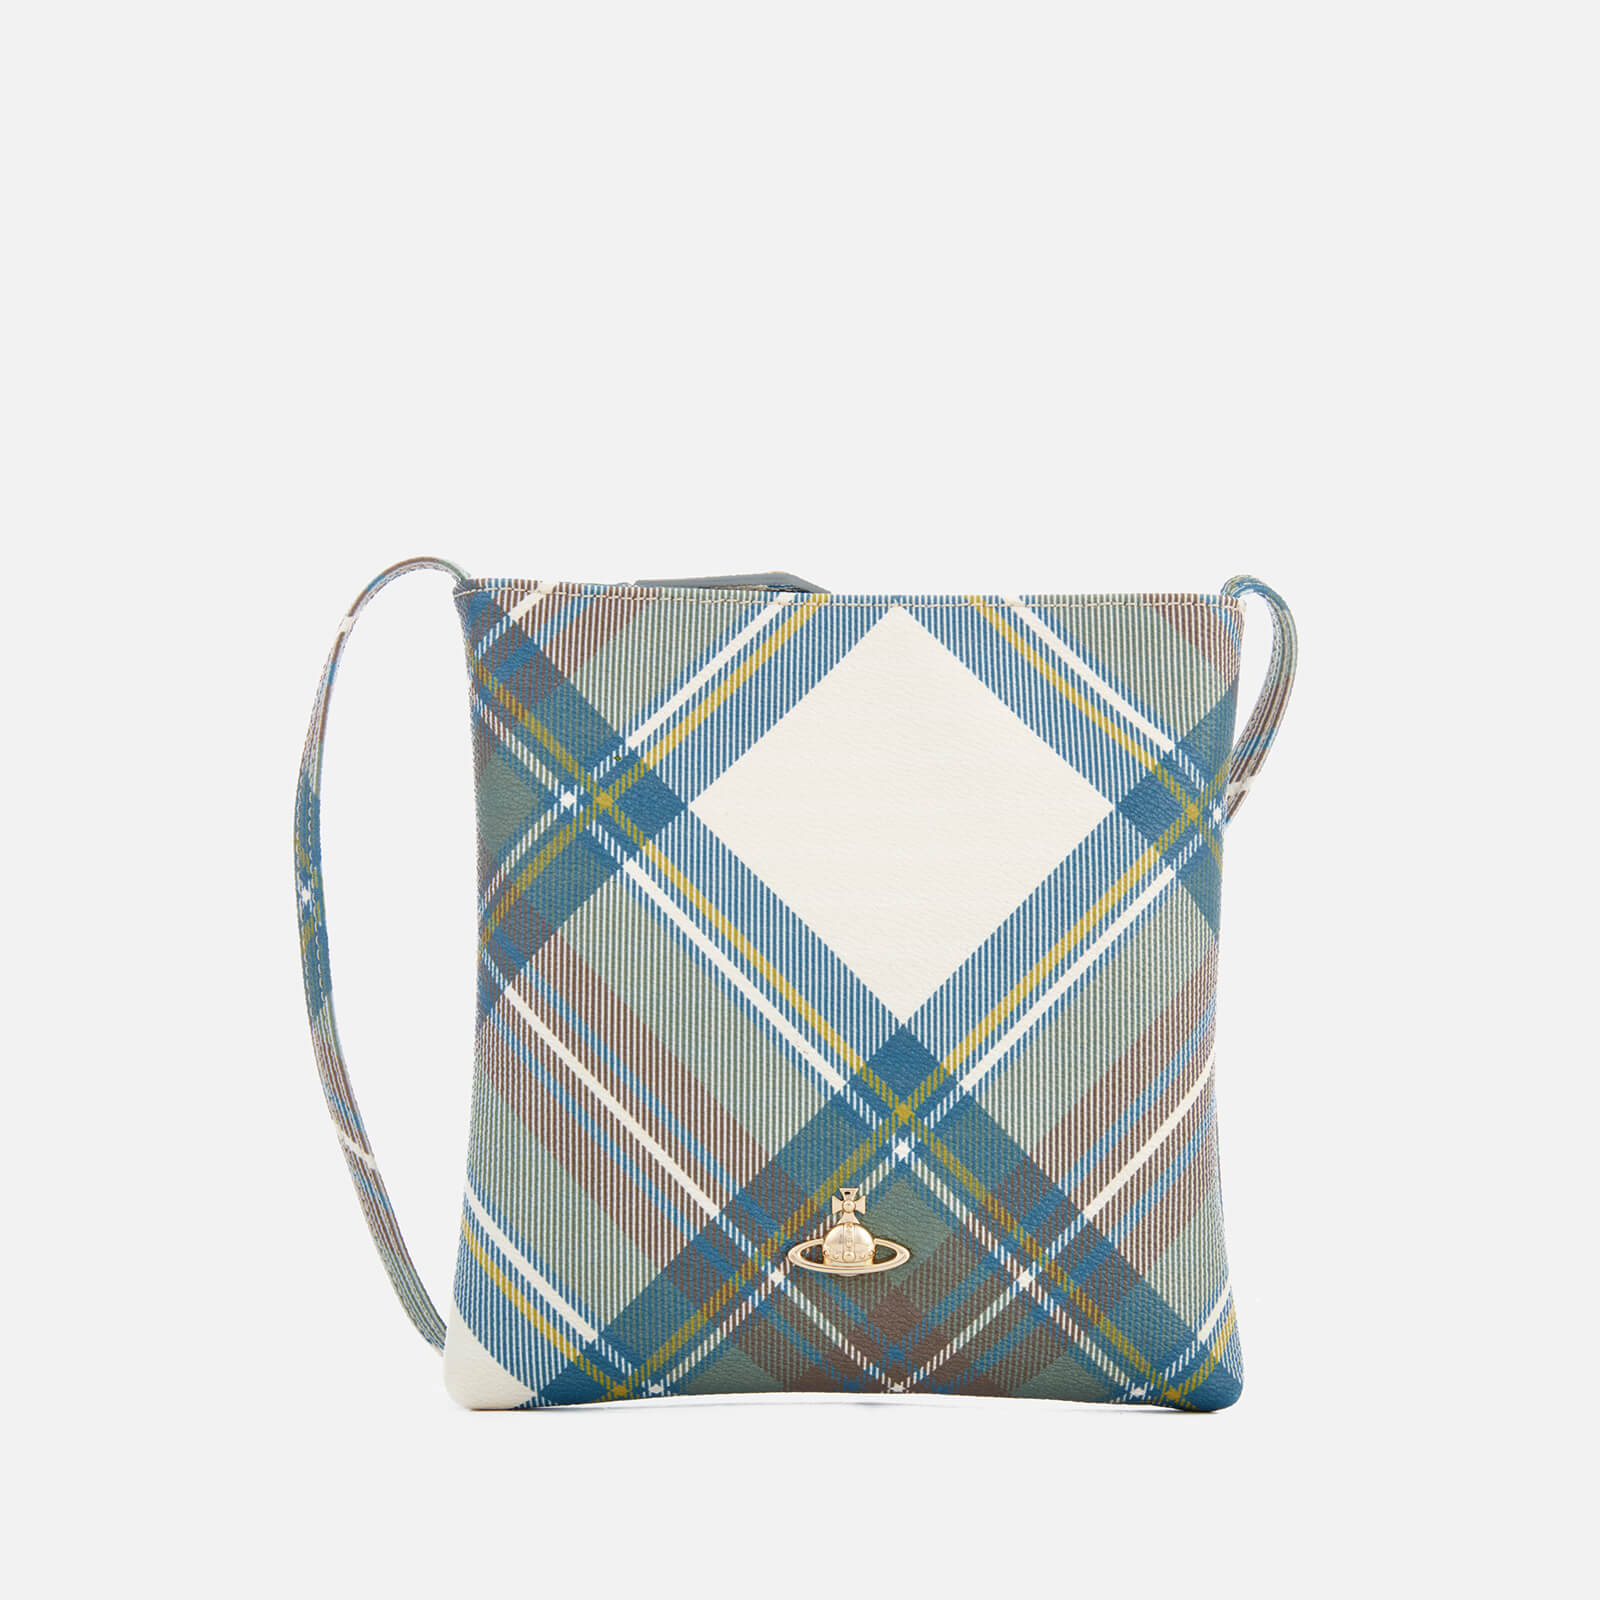 e2b5124c3b77 Vivienne Westwood Women s Derby Purse Cross Body Bag - Stewart - Free UK  Delivery over £50